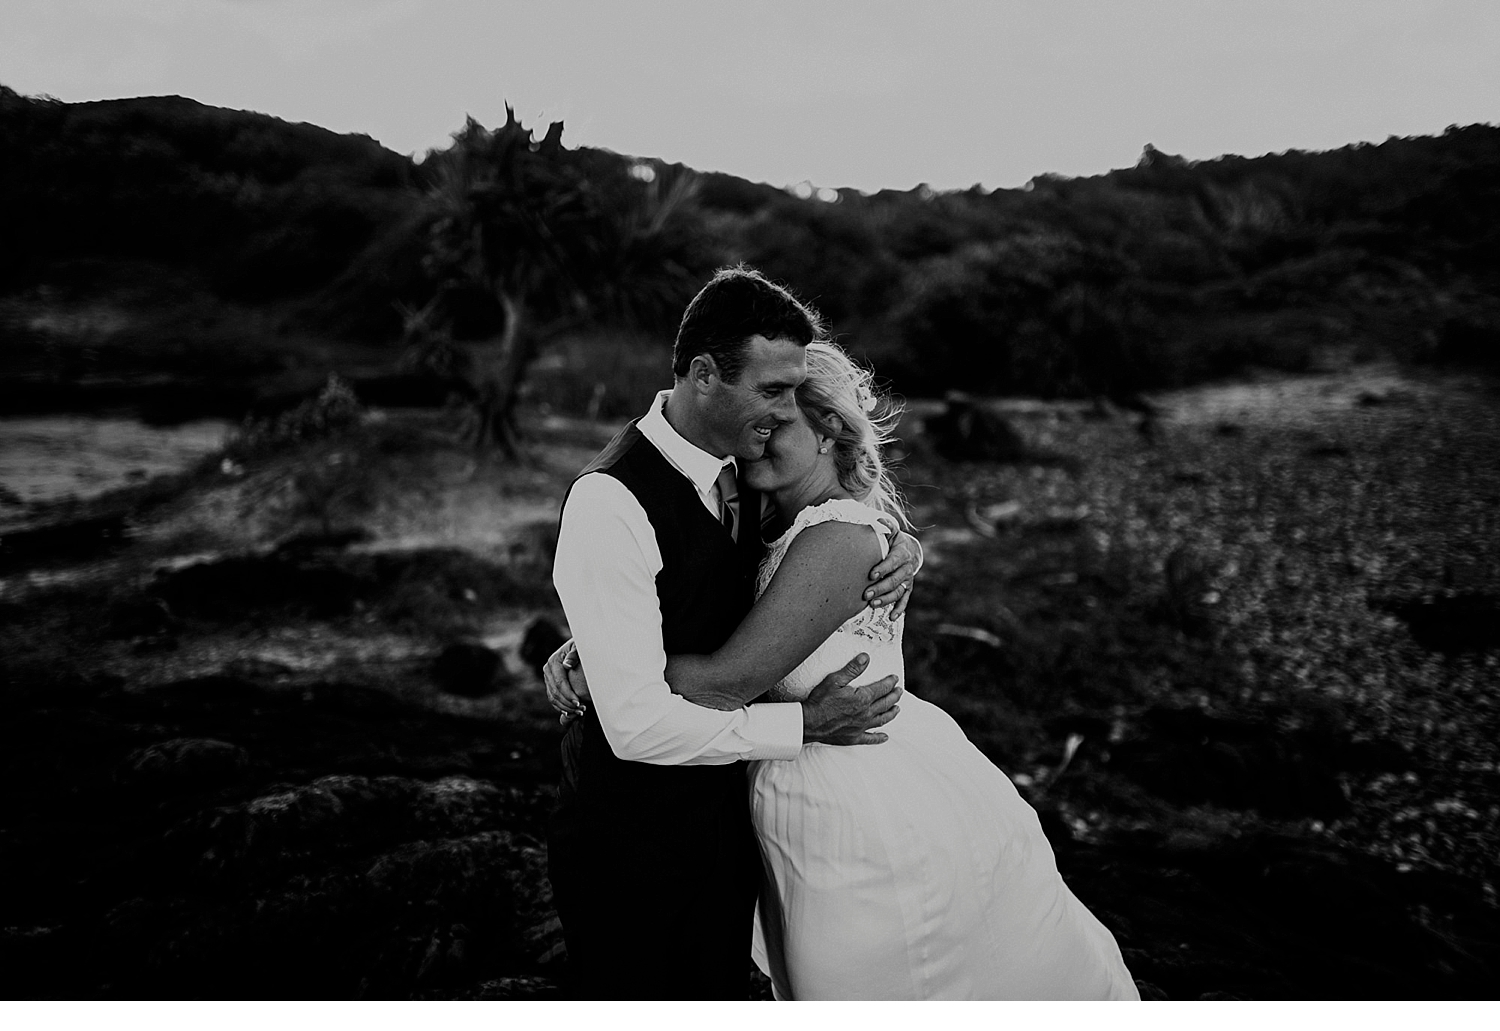 Holly_And_Josh_Morgan_Roberts_Photography 0010.JPG